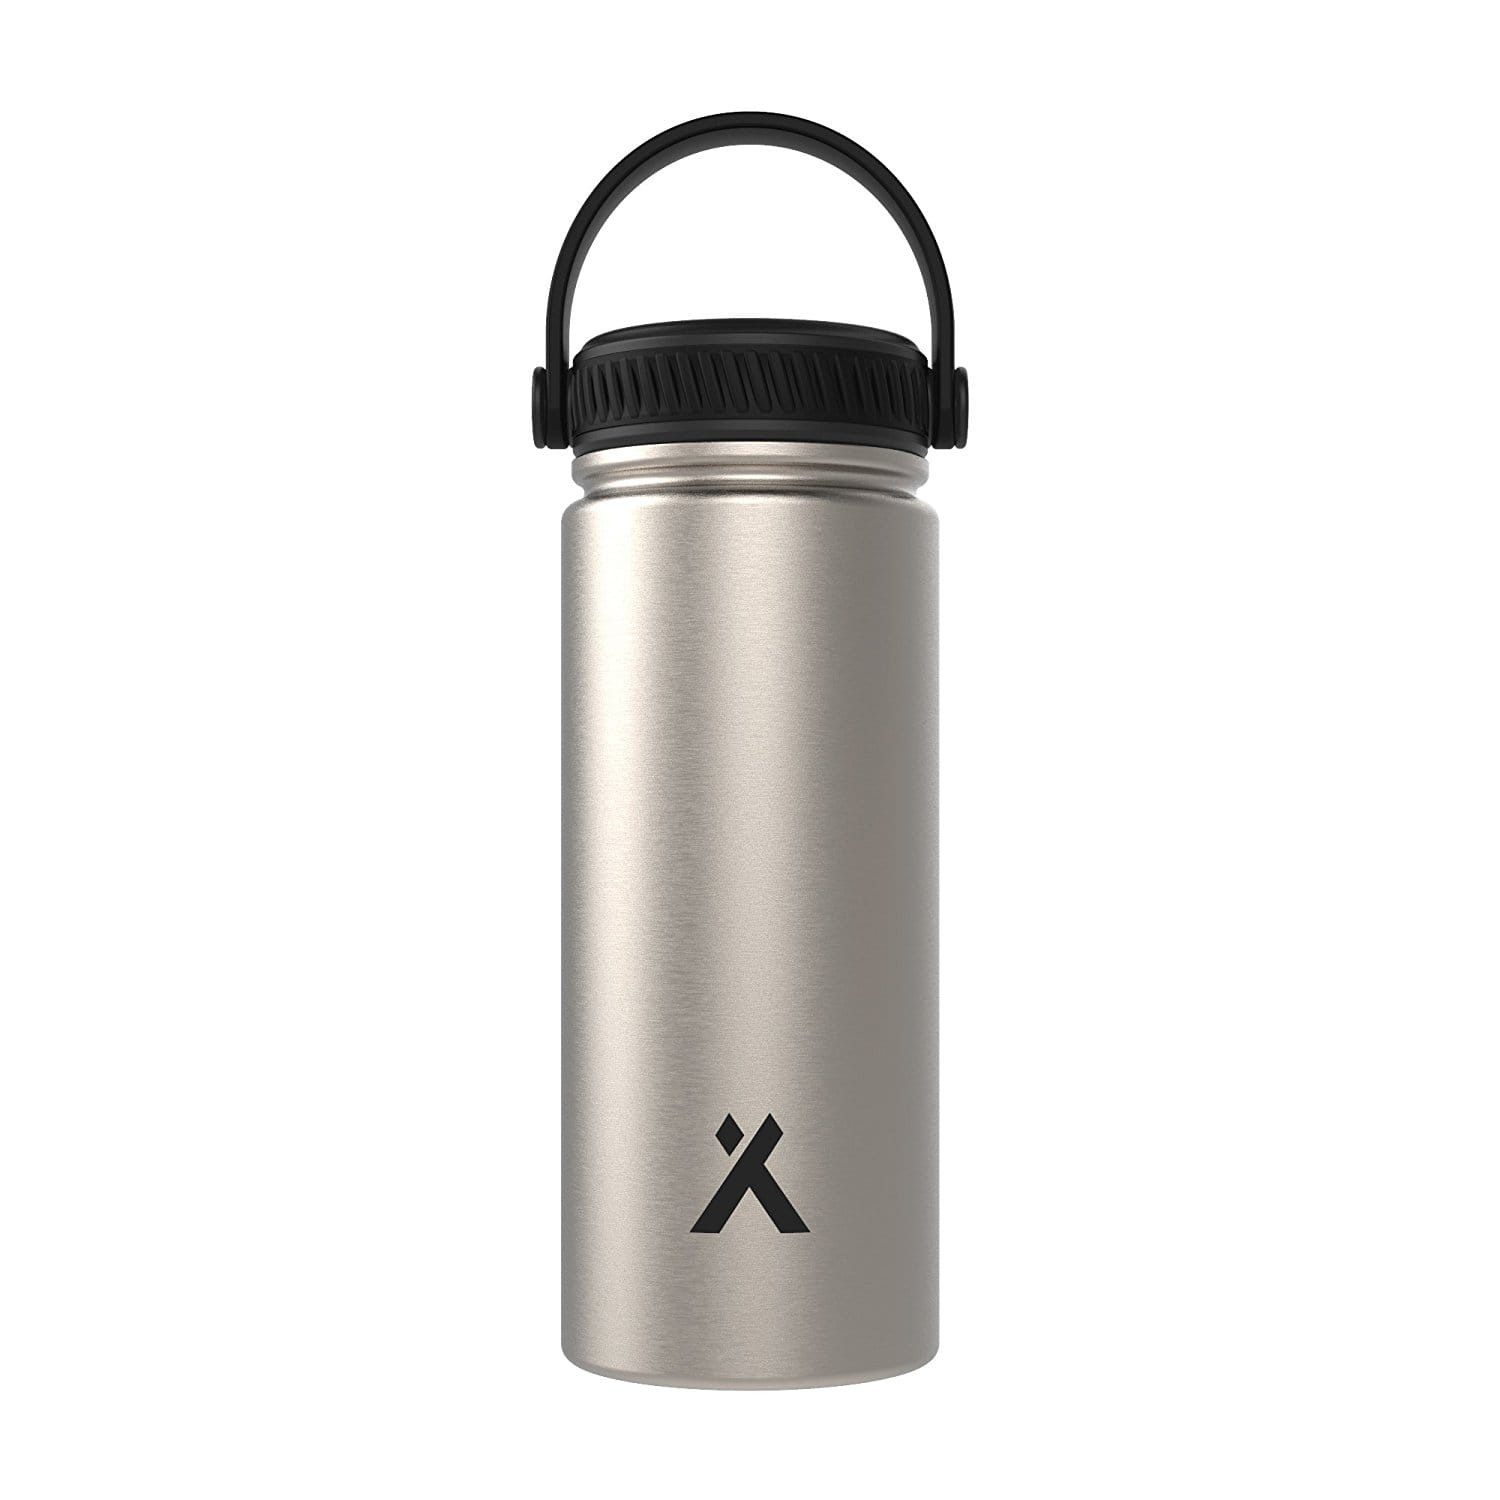 Bear Grylls Triple Wall Vacuum Insulated Water Bottle 20 oz. Color: Stainless steel only! $5.8 add-on @ Amazon $5.6